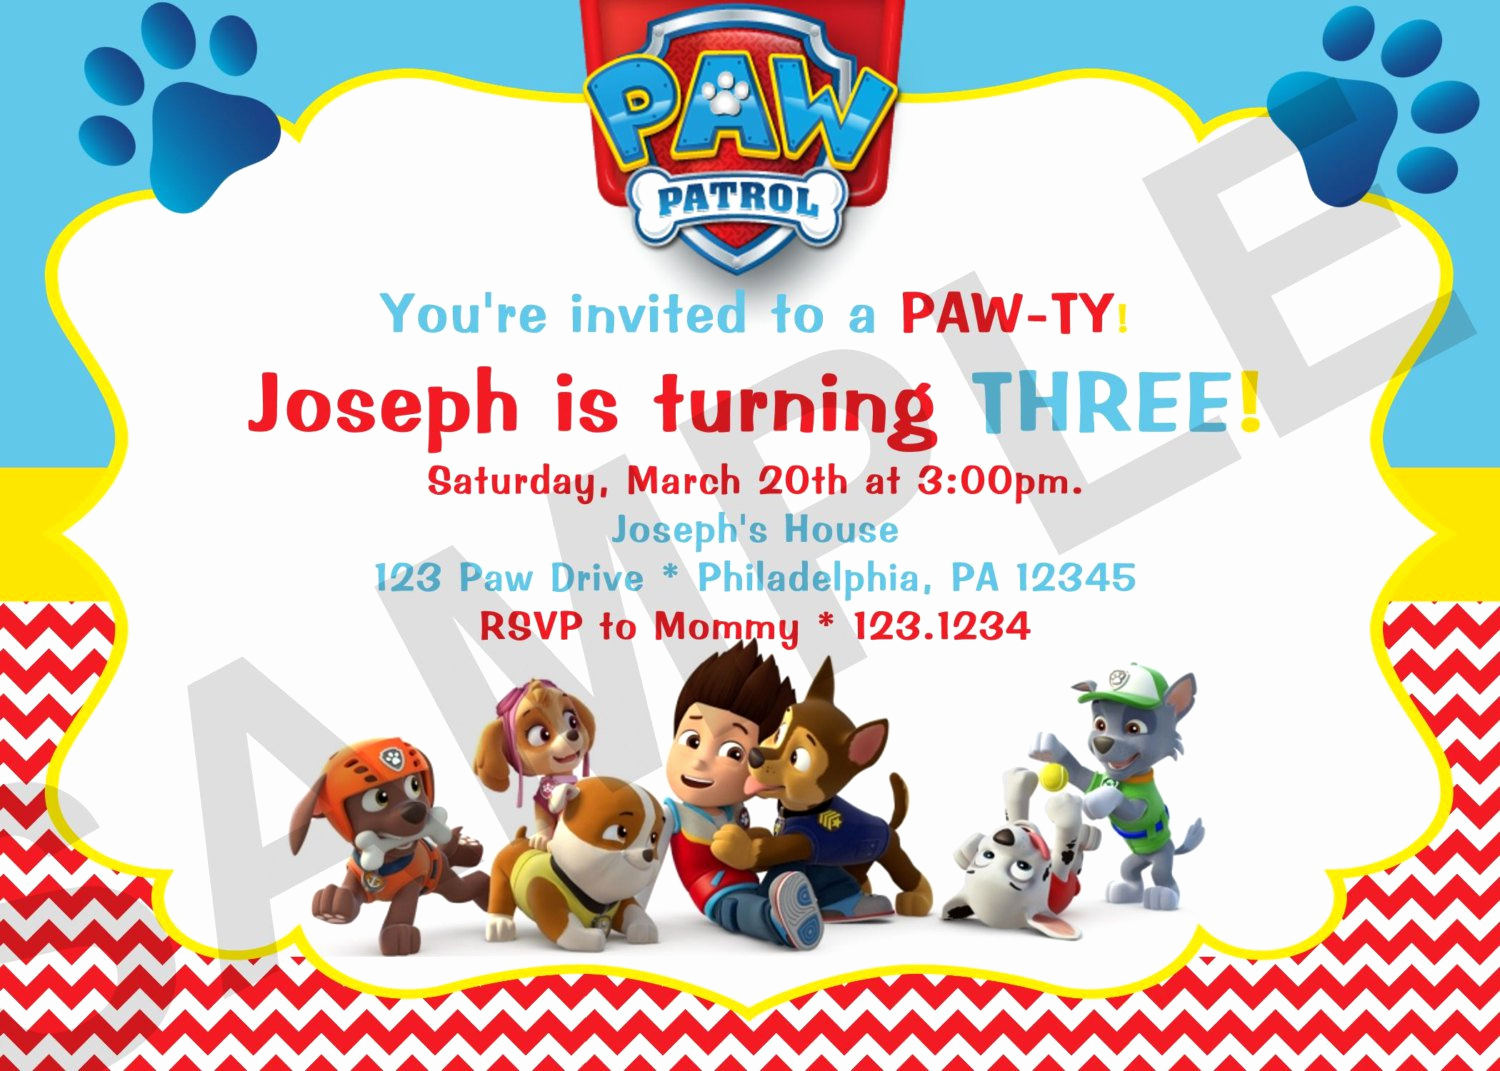 Paw Patrol Birthday Invitation Template New Paw Patrol Birthday Invitations Paw Patrol Birthday